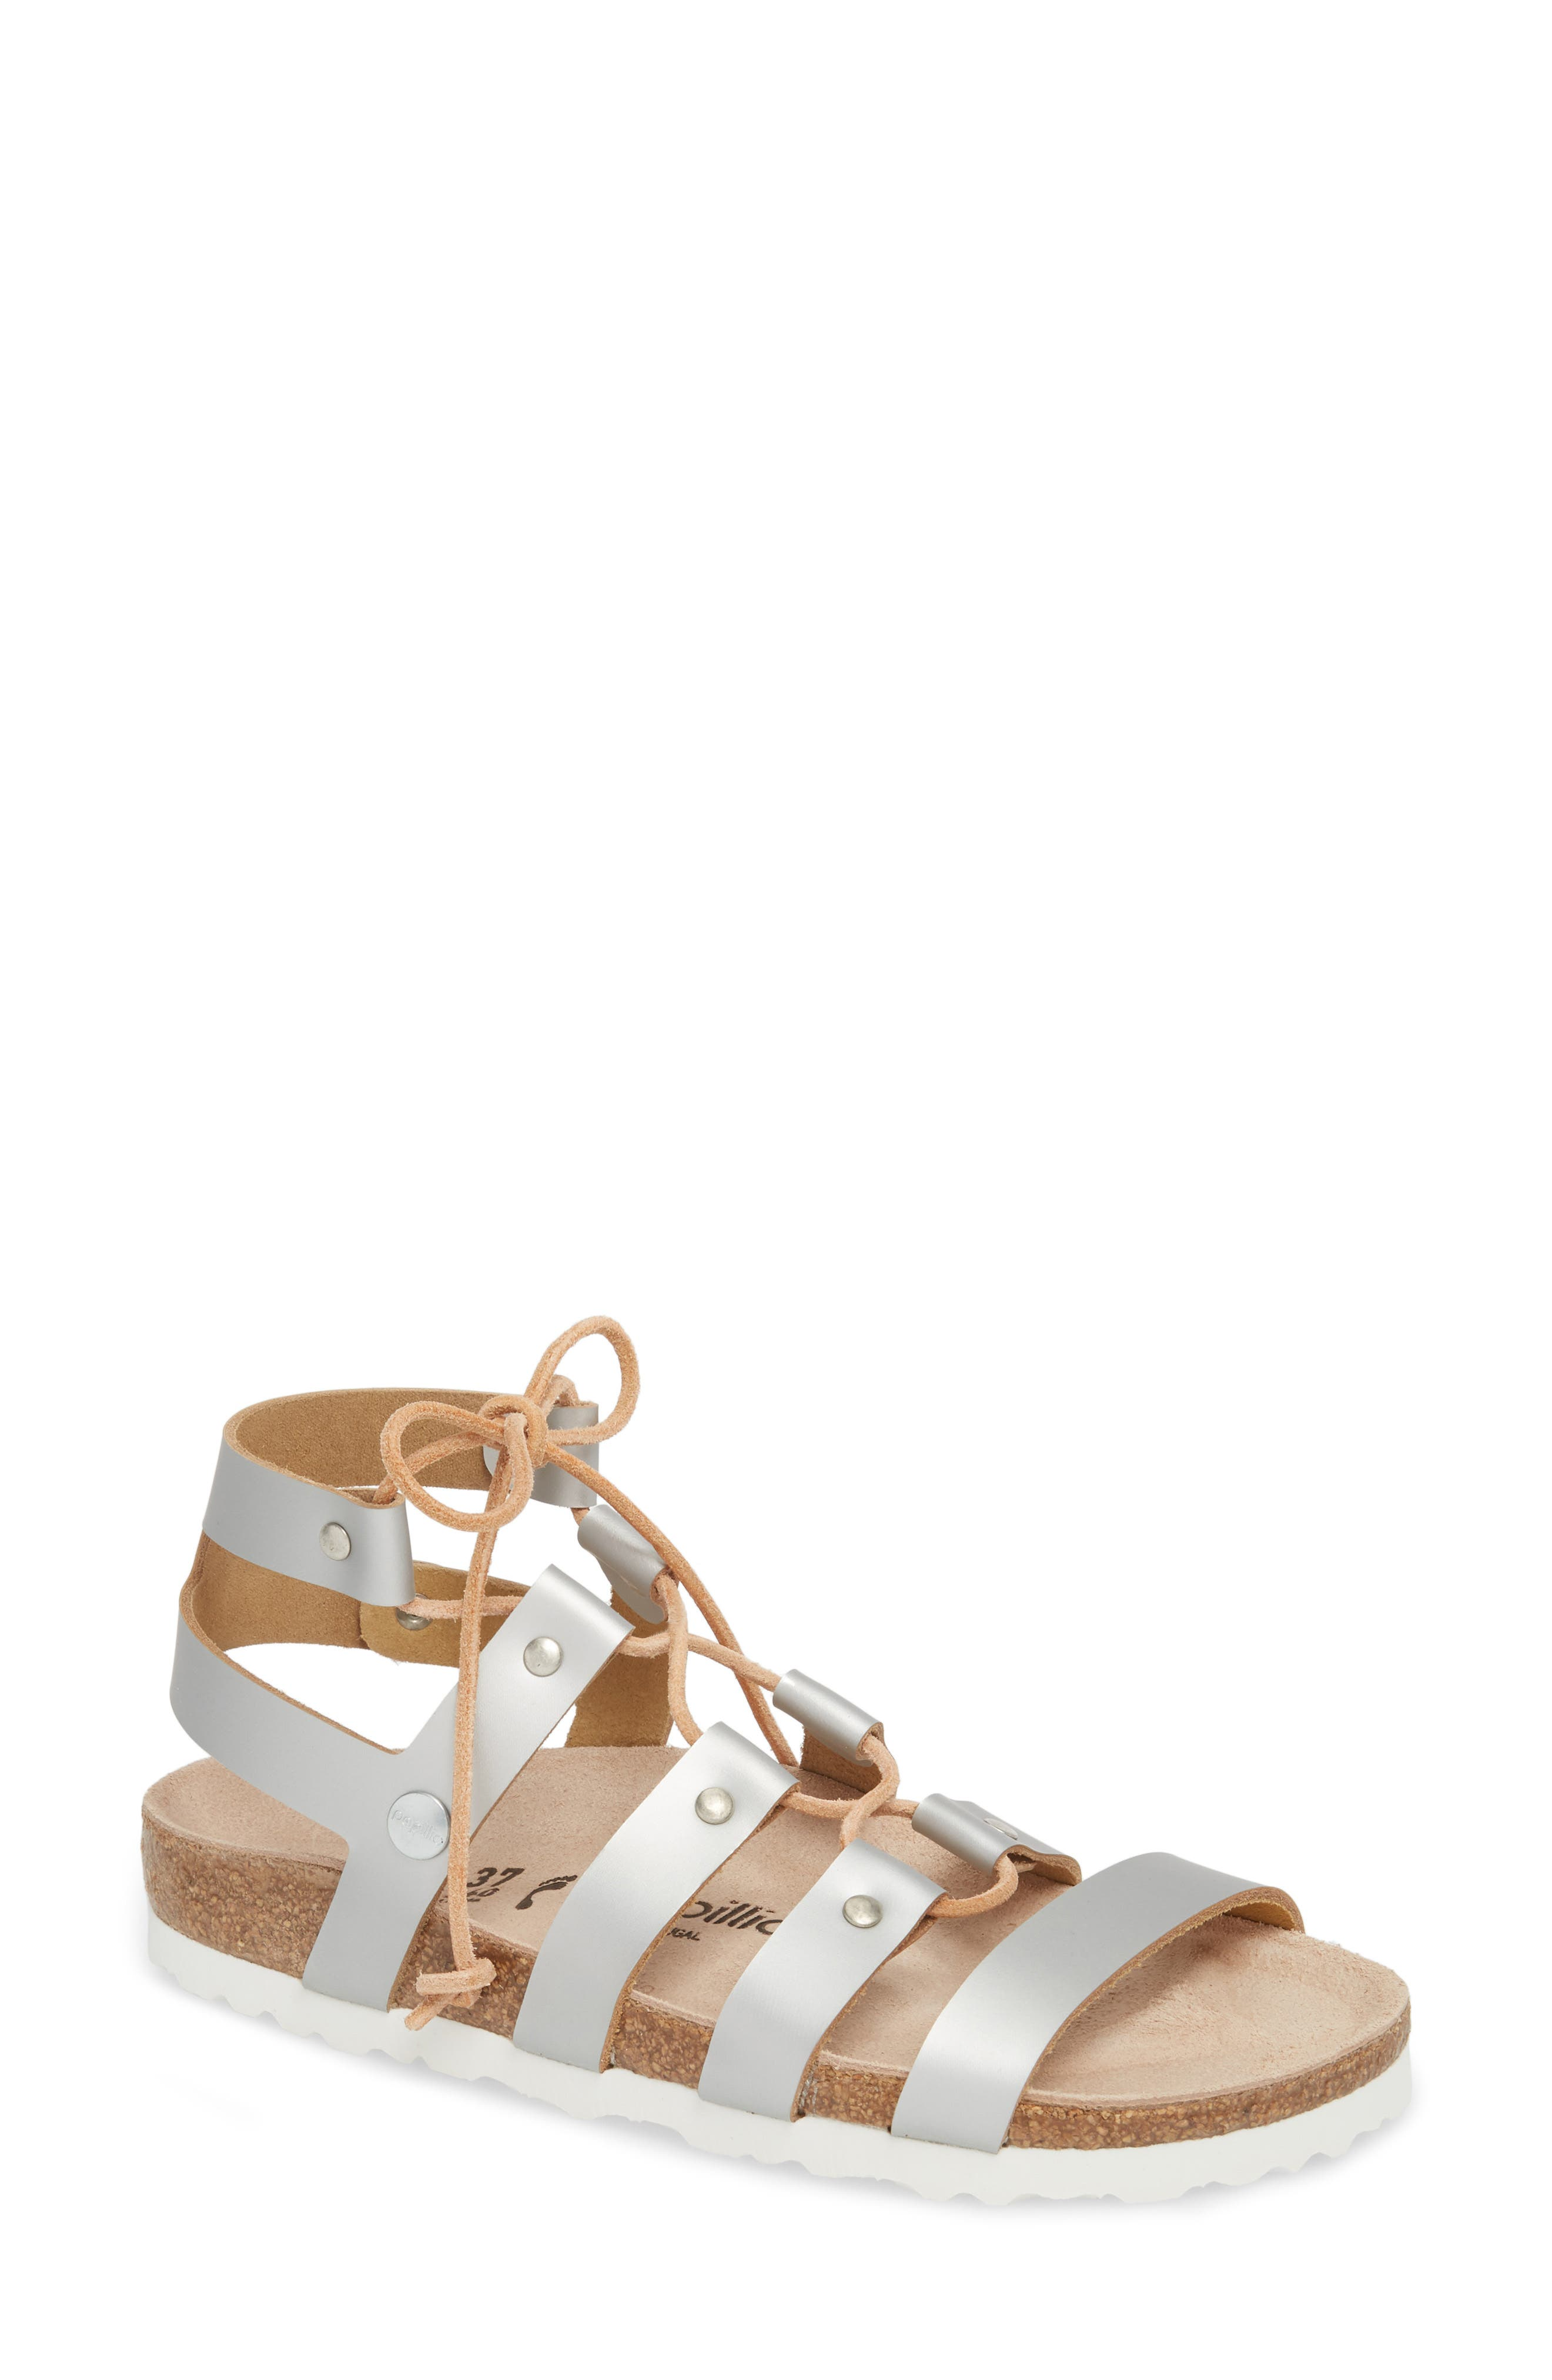 Papillio by Birkenstock Cleo Gladiator Sandal,                             Main thumbnail 1, color,                             Frosted Silver Leather